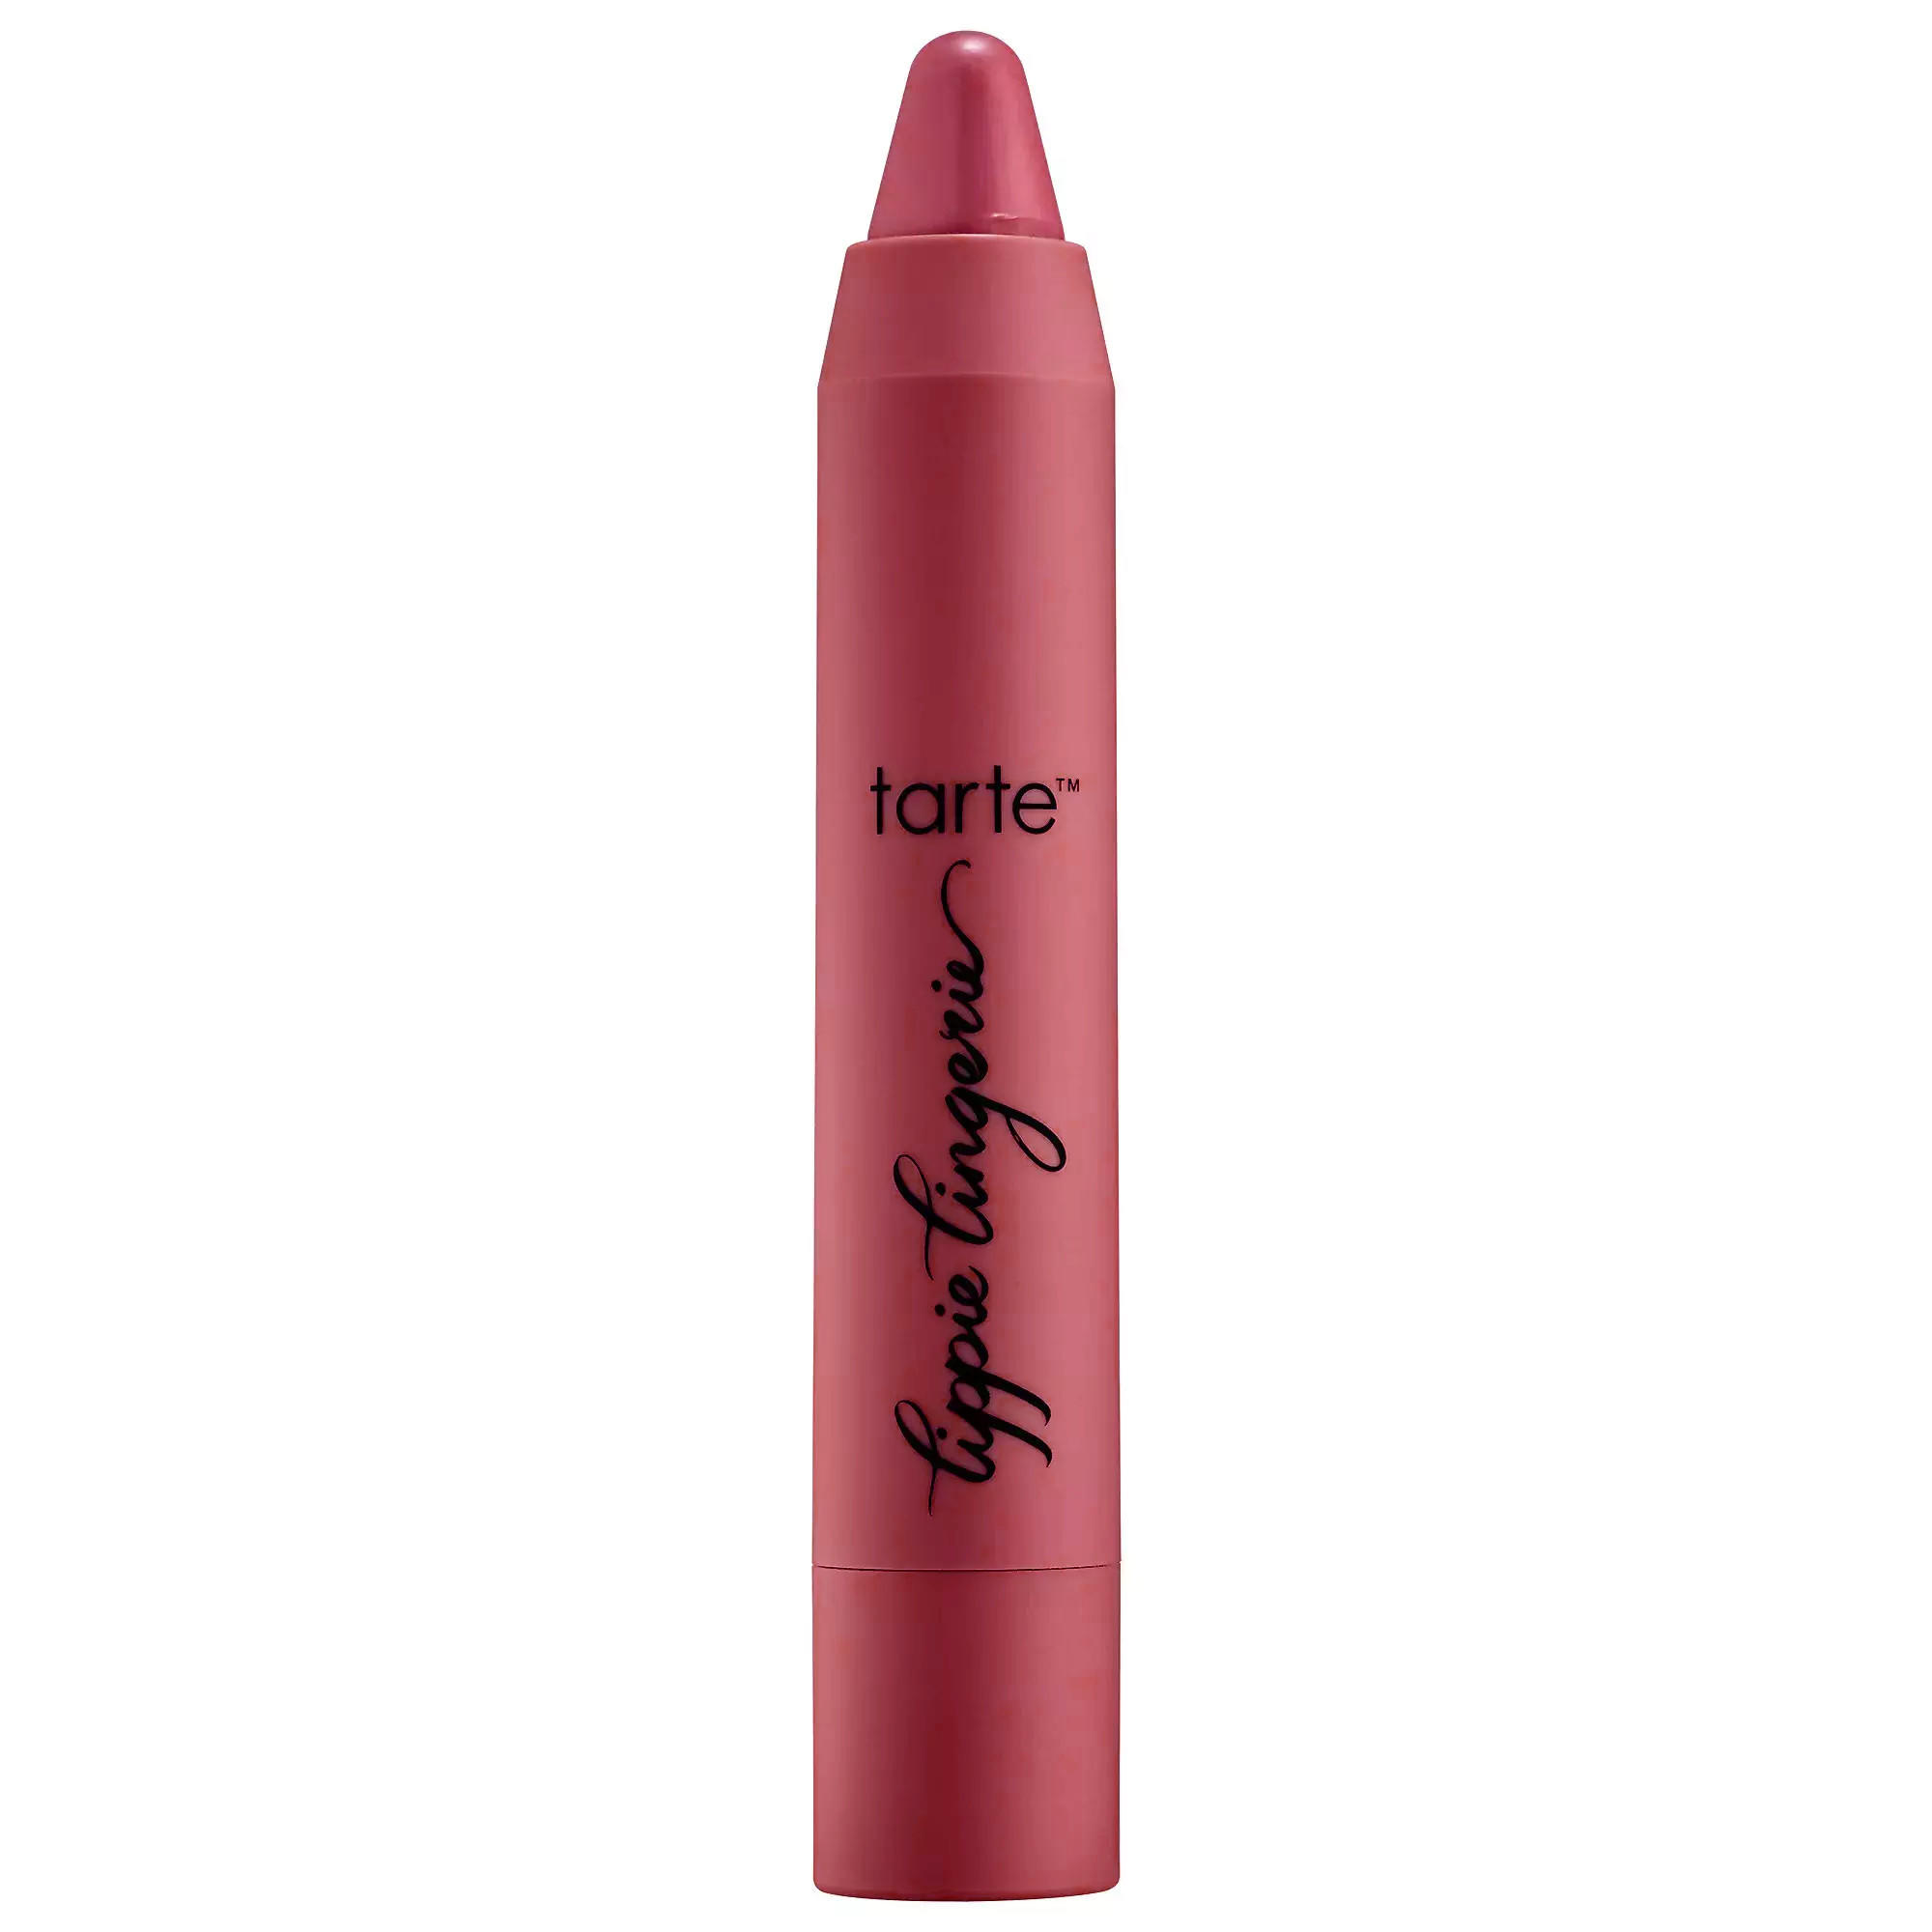 Tarte Lippie Lingerie Enticing